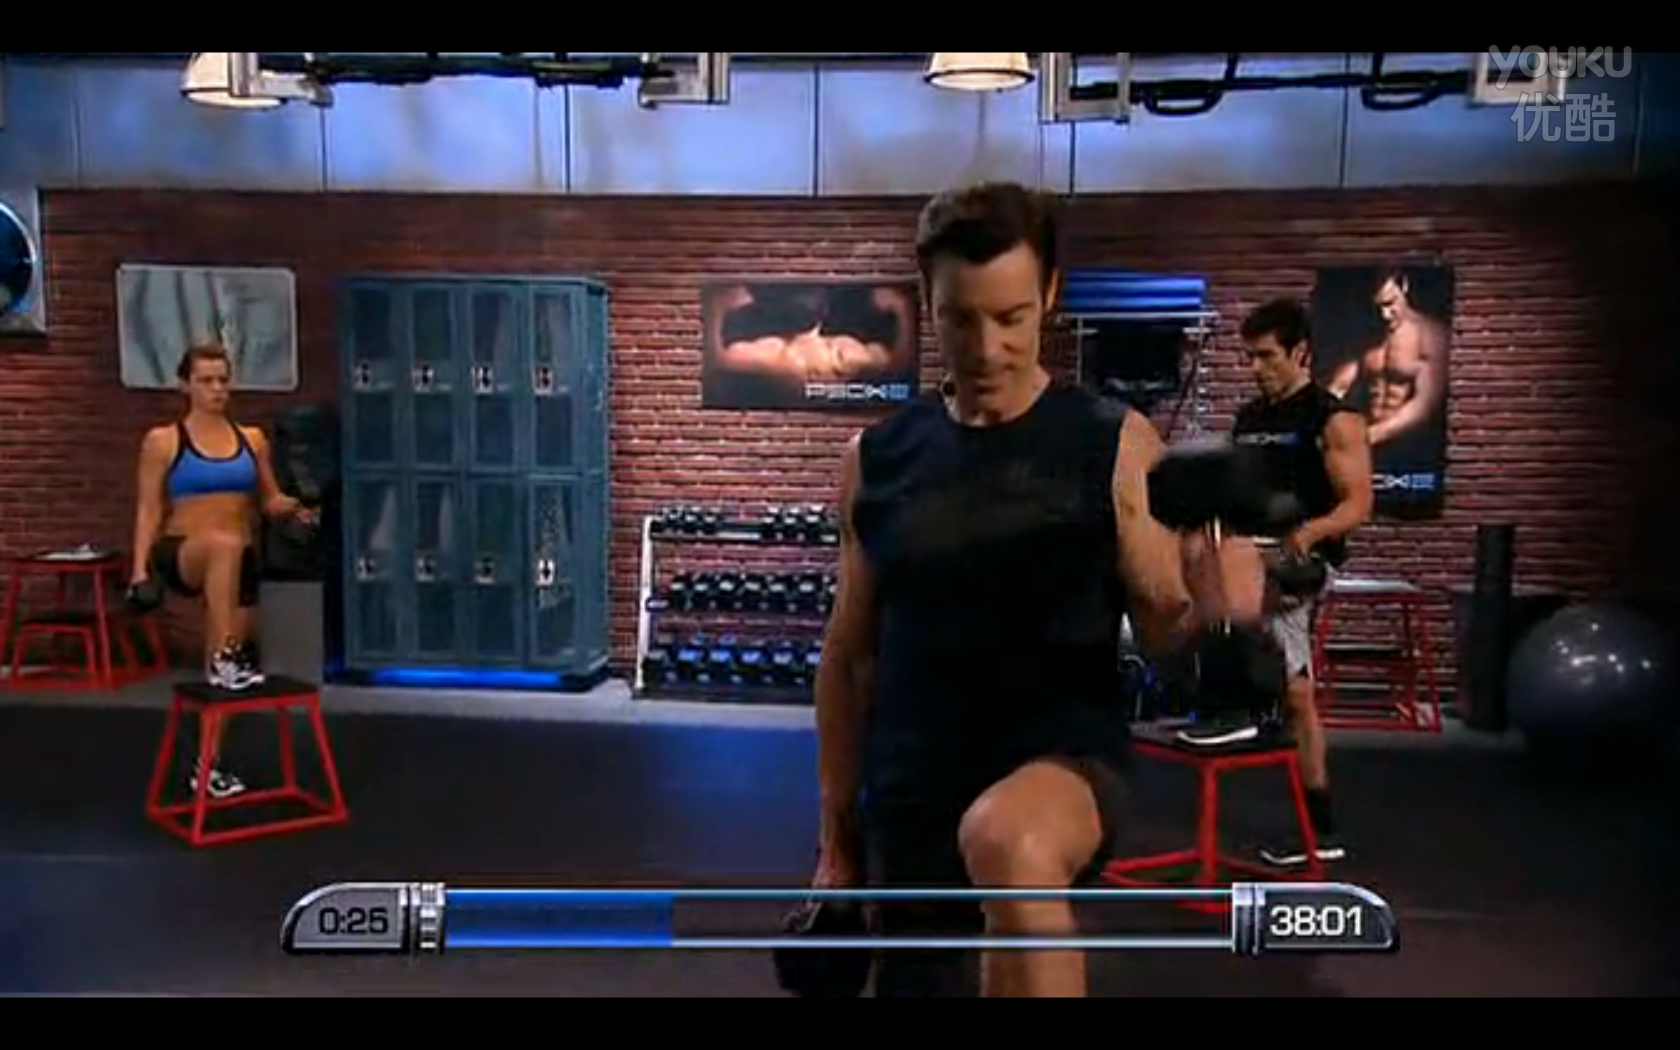 P90X2 V Sculpt Workout (54 minutes) this takes you to a